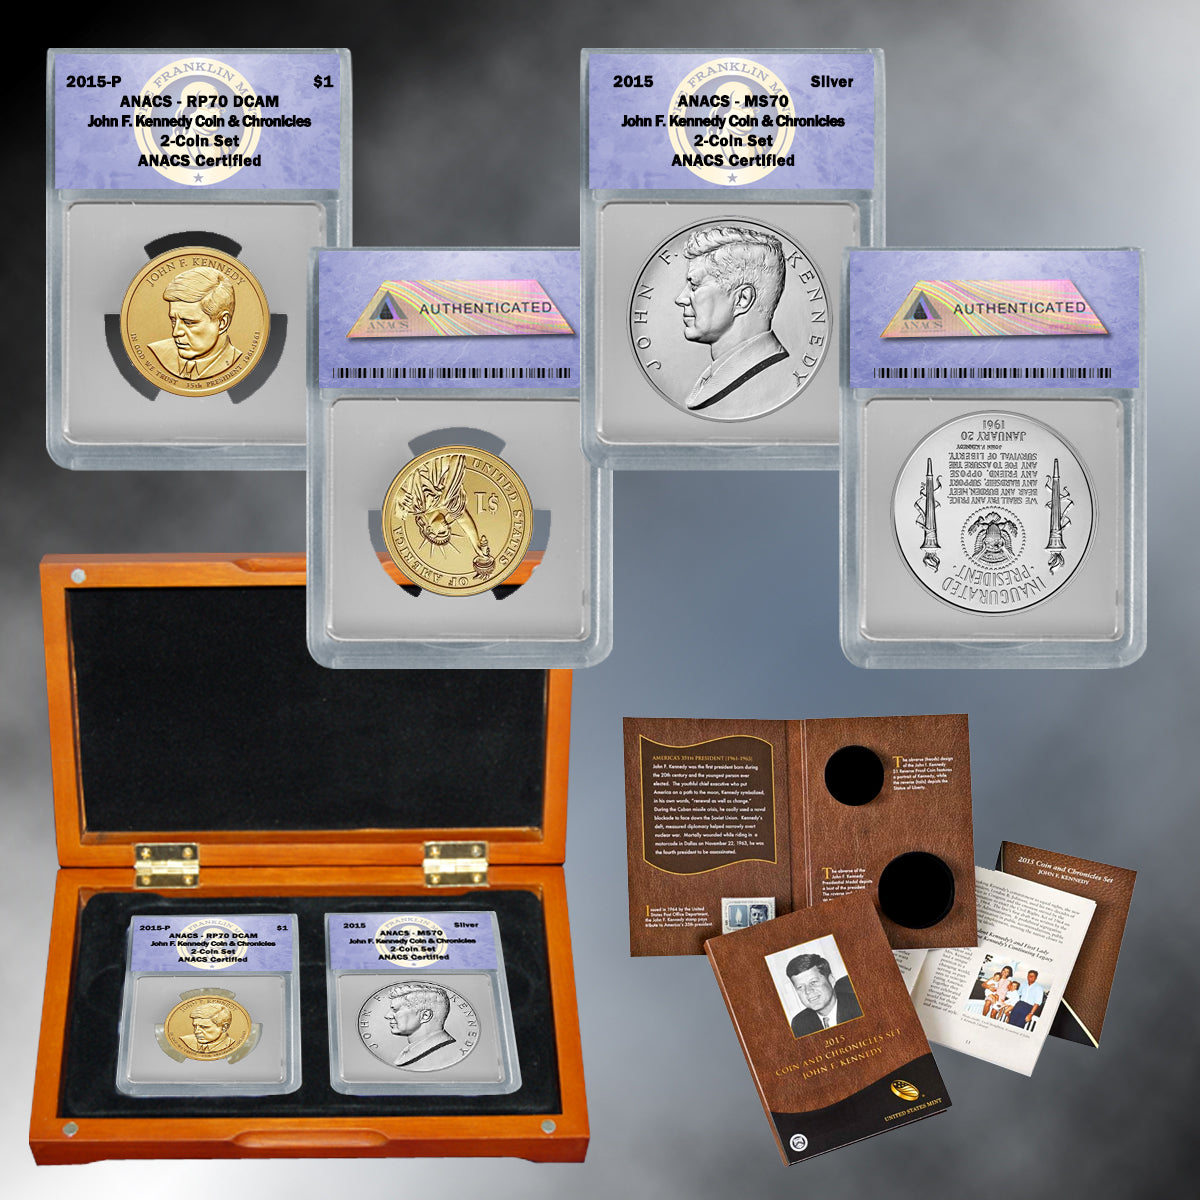 2015 Coin & Chronicles Set - John F. Kennedy ANACS 70